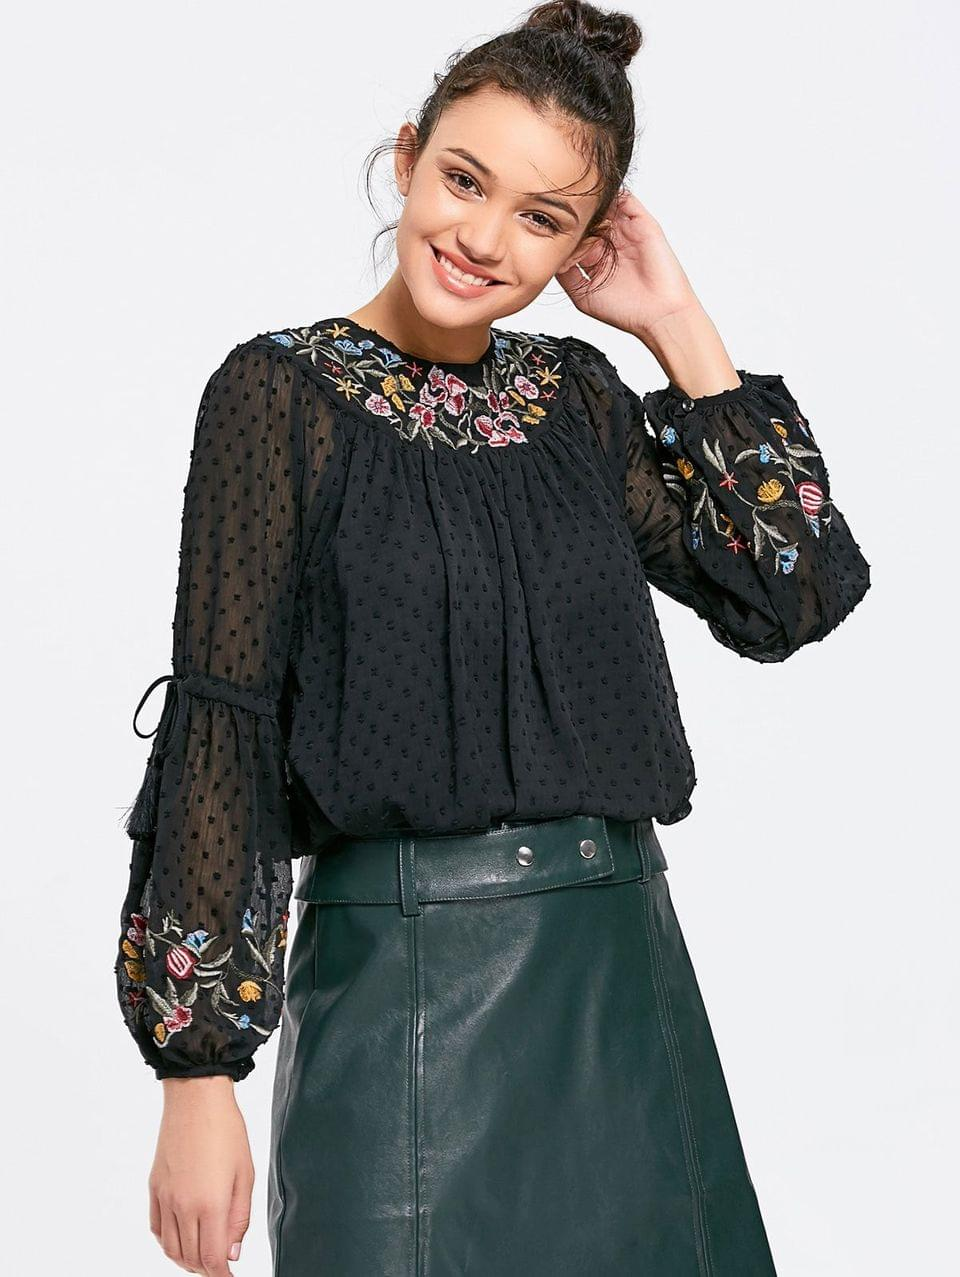 Women's Applique See Thru Floral Embroidered Blouse - Black M